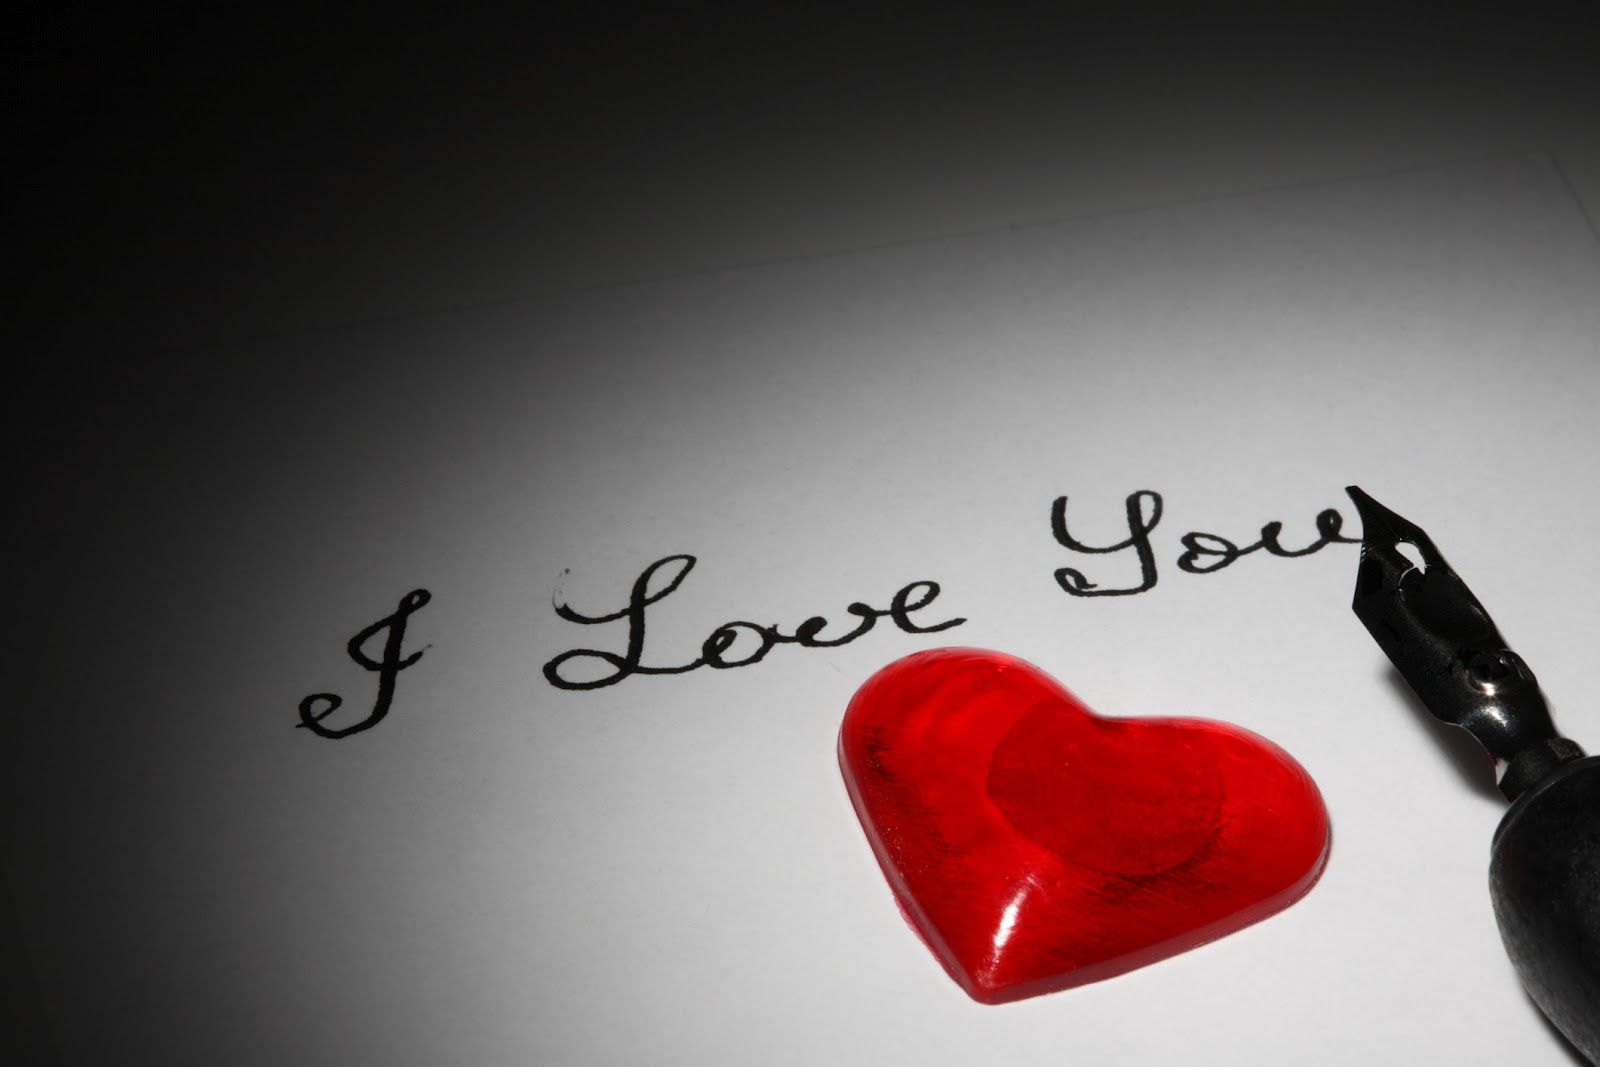 I love you handwriting HD Wallpaper Wallpapers Pinterest Wallpaper and Hd wallpaper